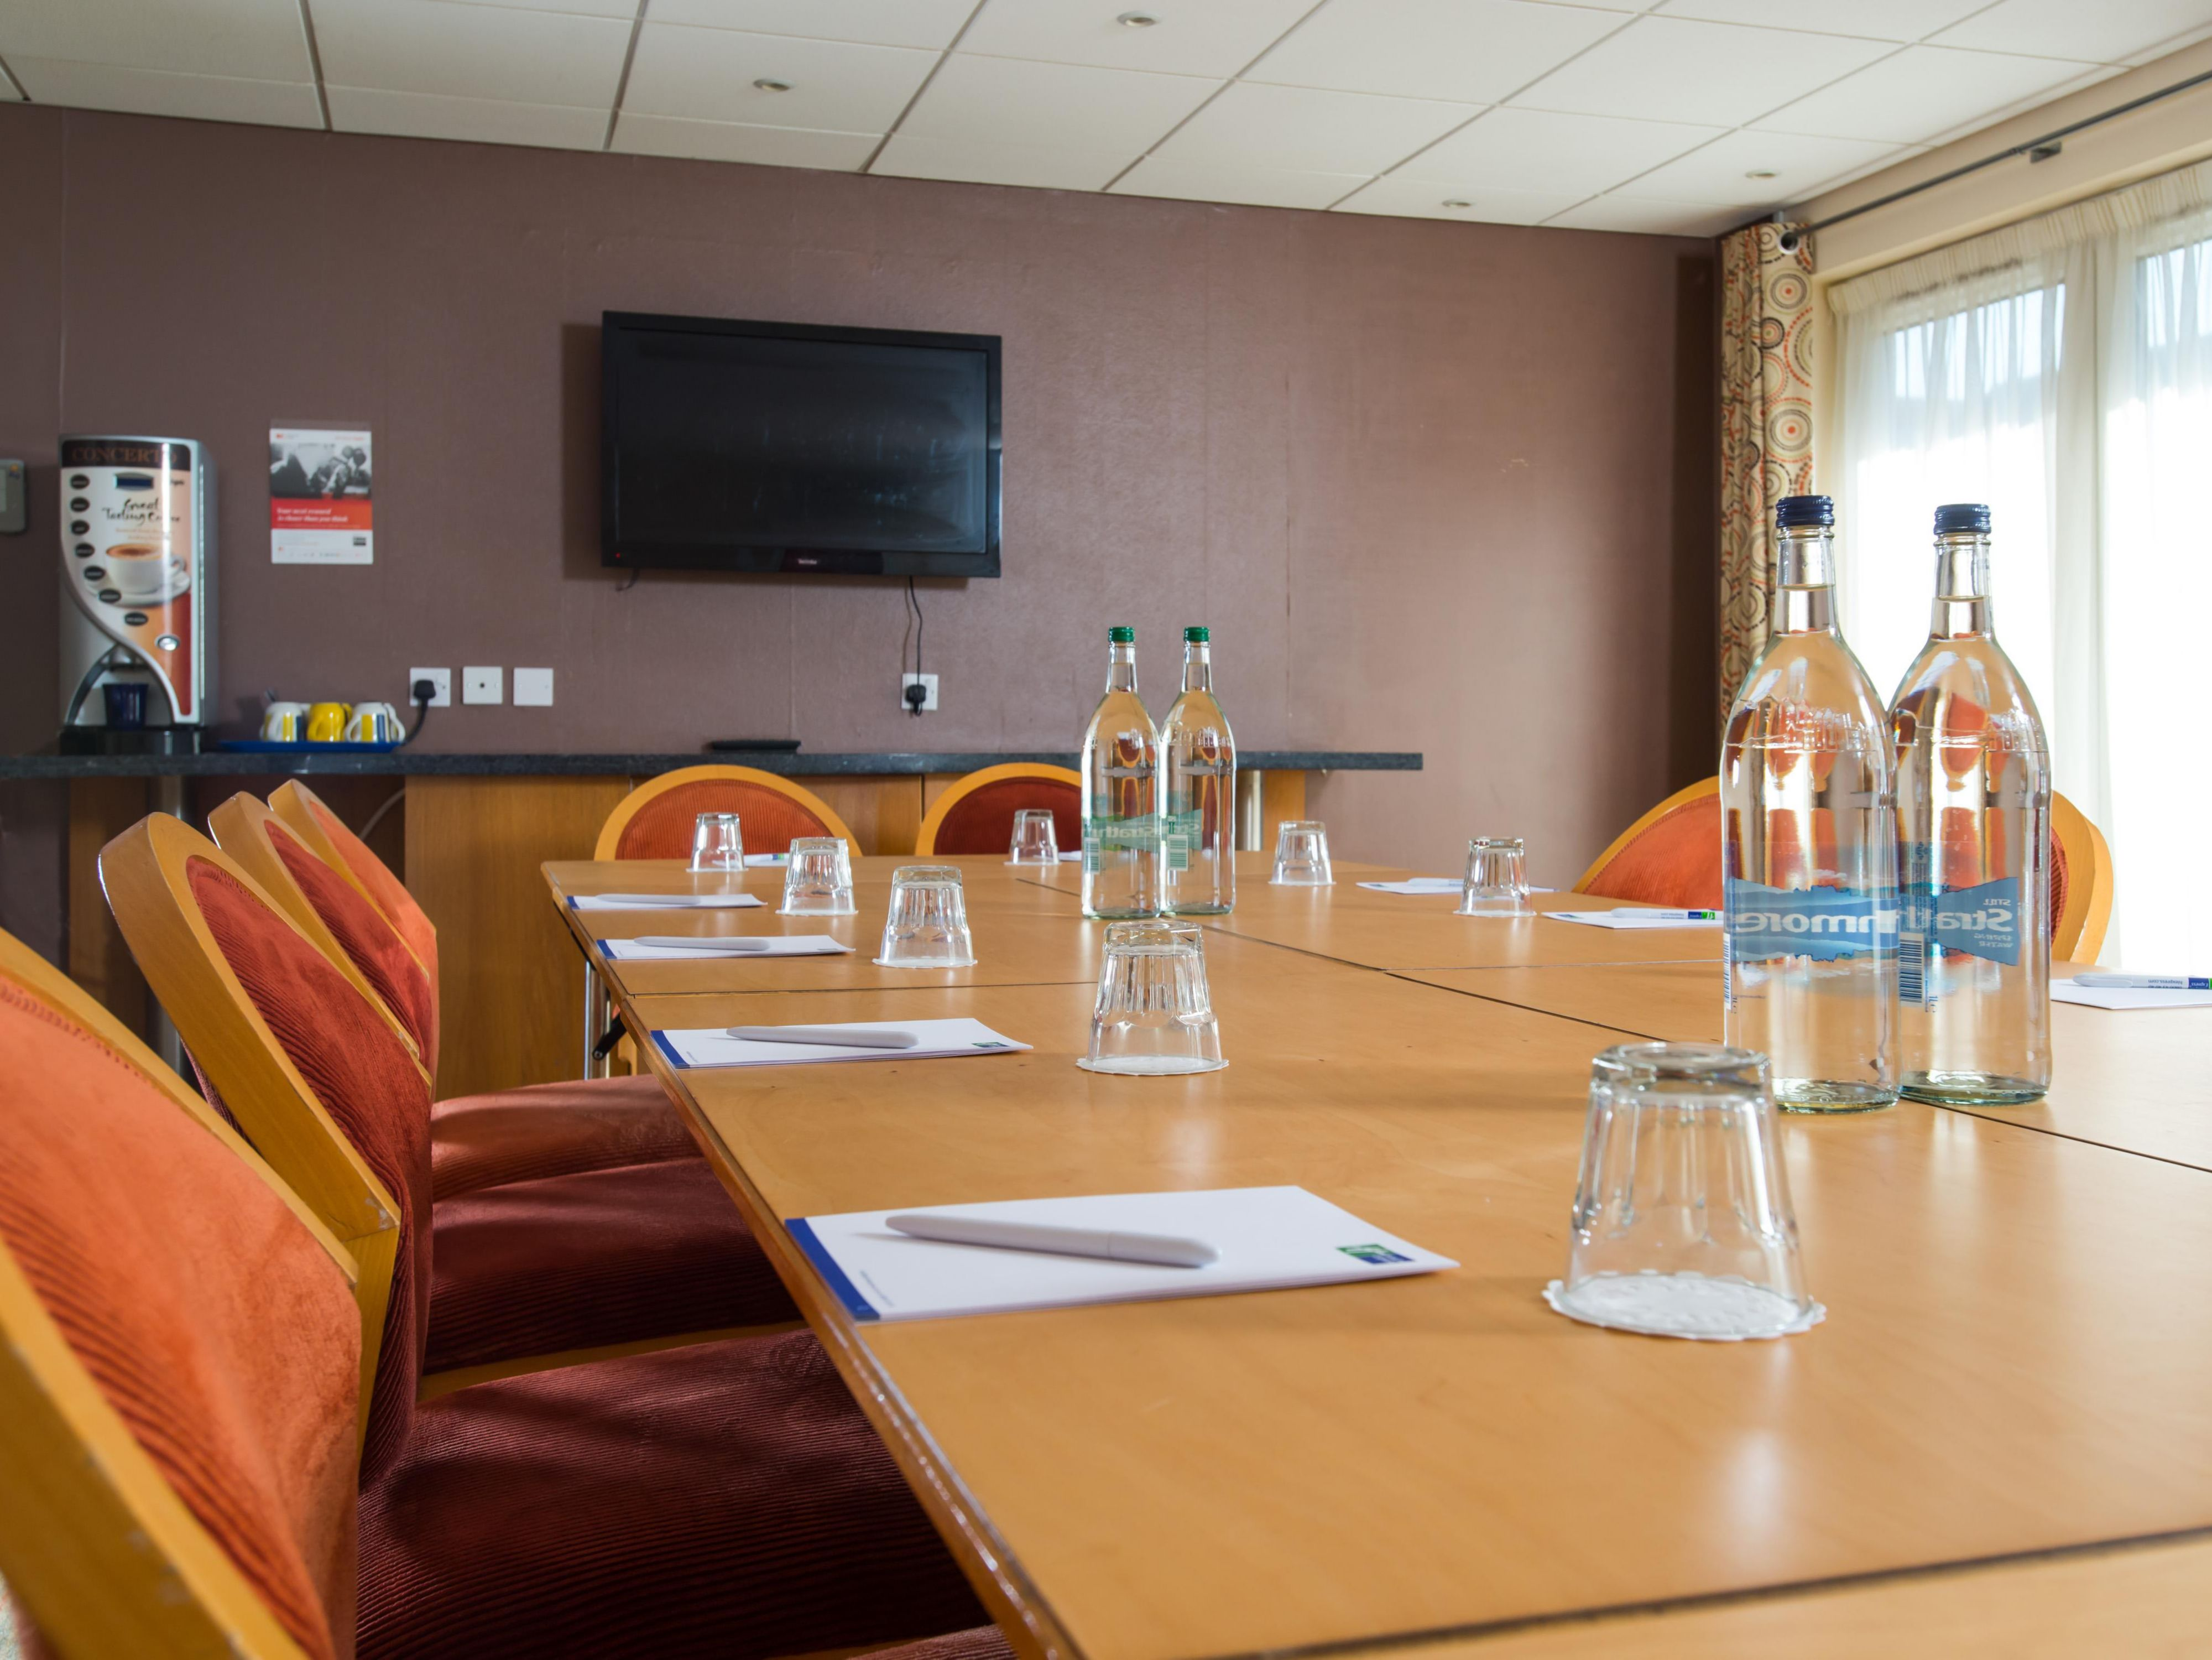 Our hotel is an ideal venue for a small business meeting or event